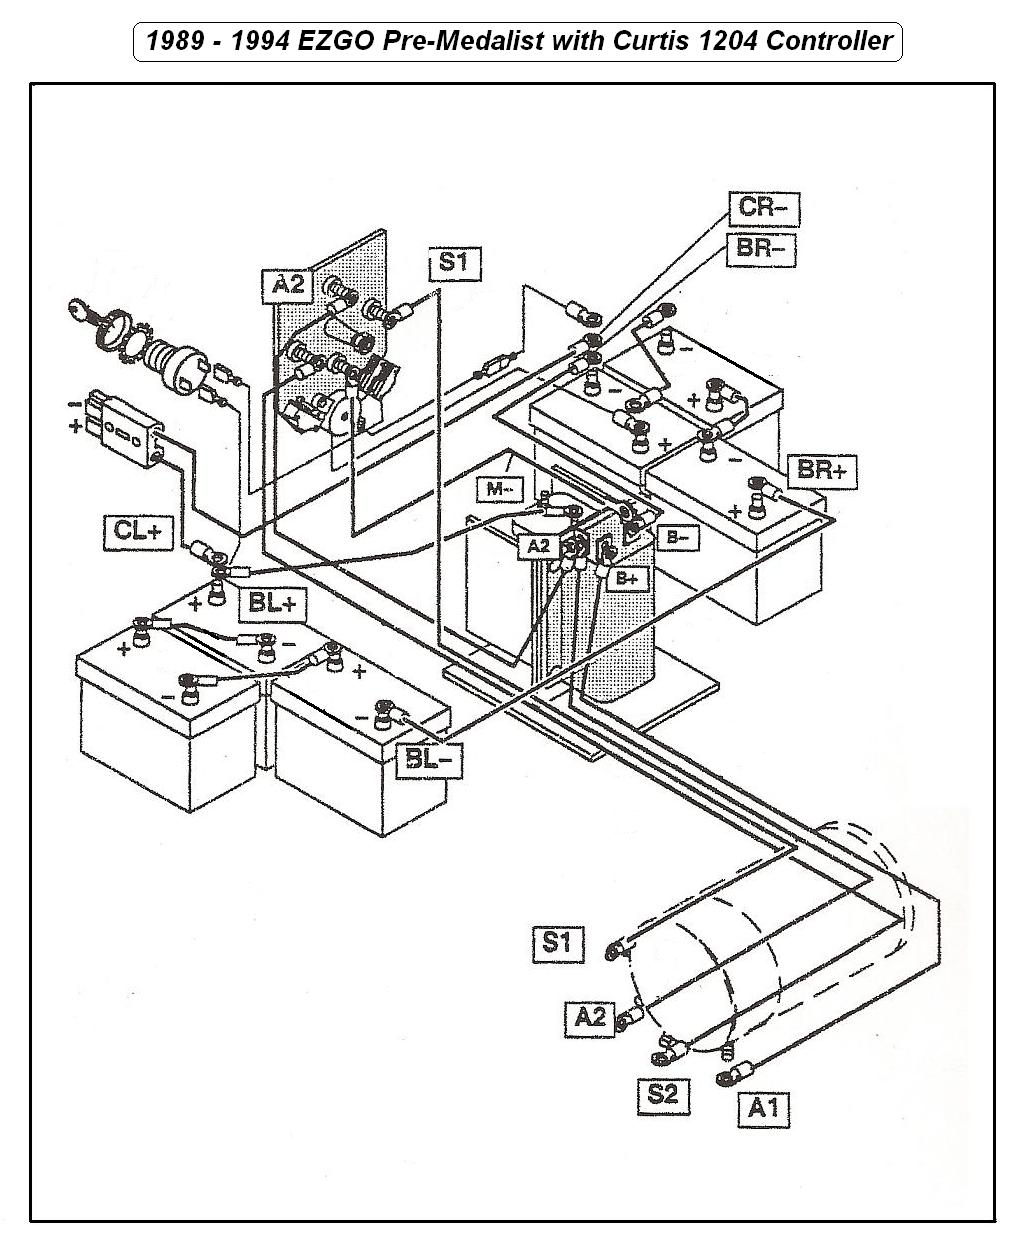 taylor dunn b254 wiring diagram starting know about wiring diagram \u2022 precedent golf cart wiring diagram taylor dunn wiring diagram trusted wiring diagrams rh kroud co